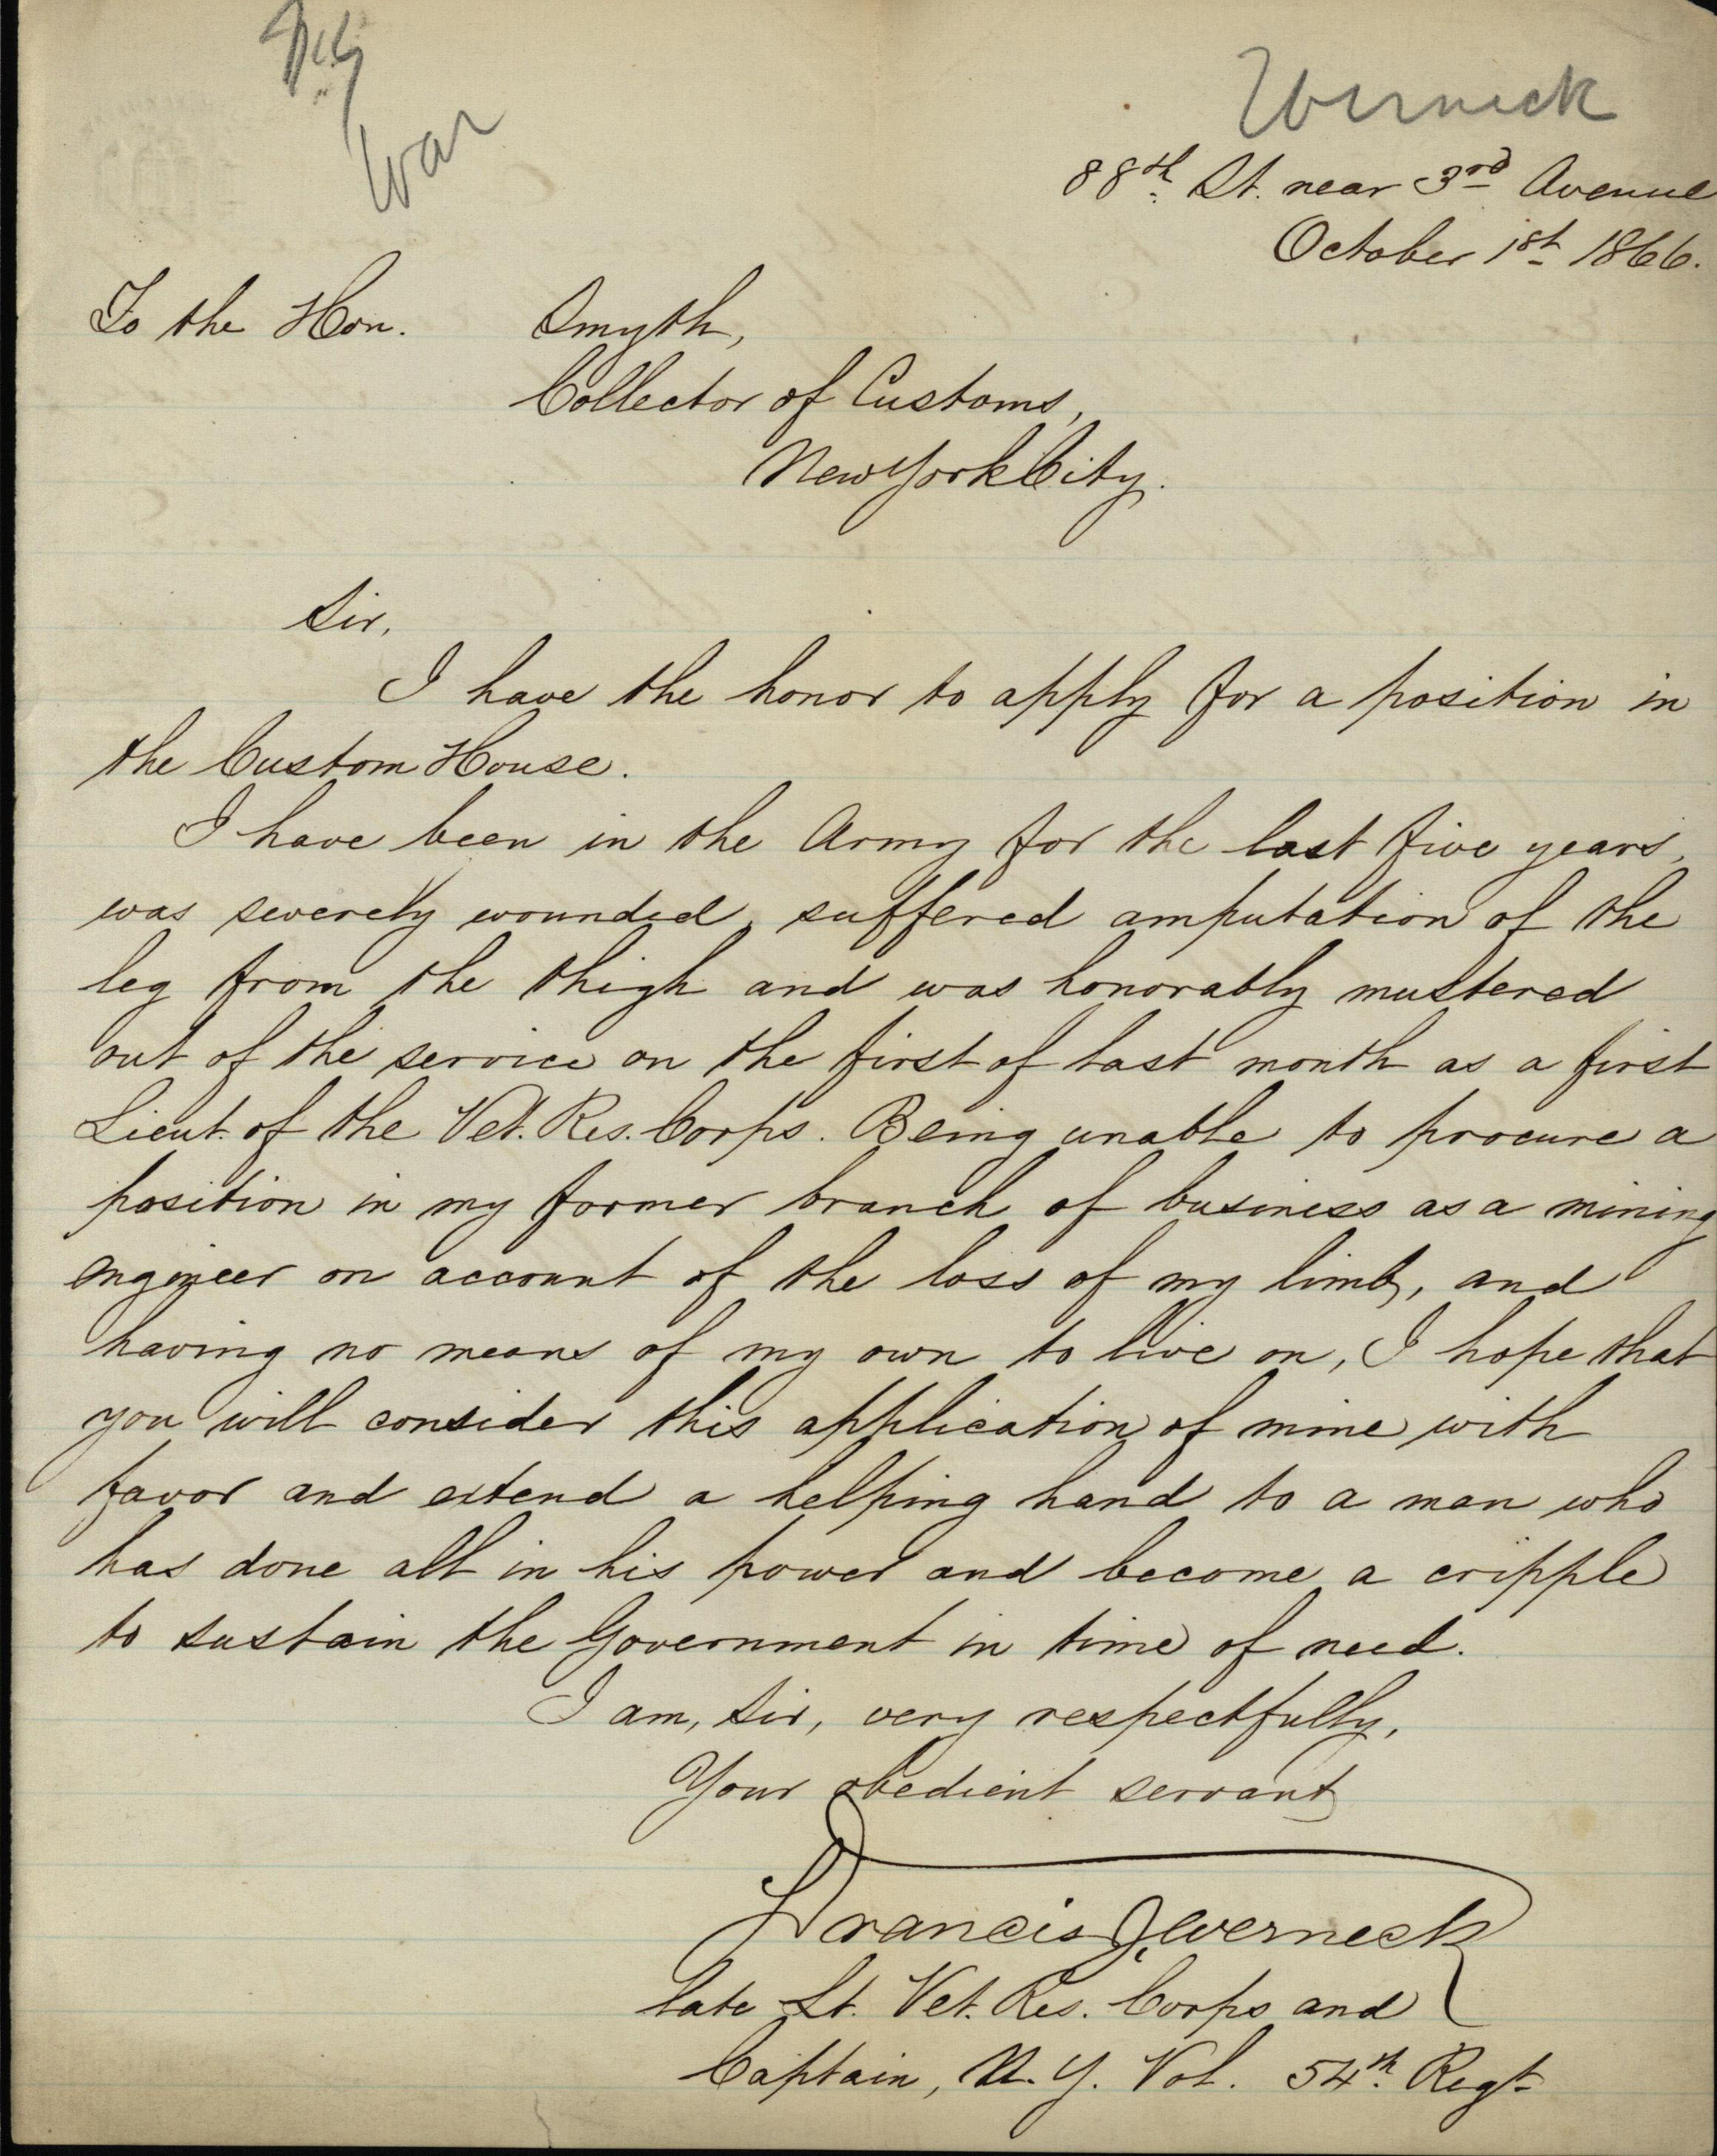 Letter to the Collector of Customs from Francis Wernick, a Civil War veteran, October 1, 1866